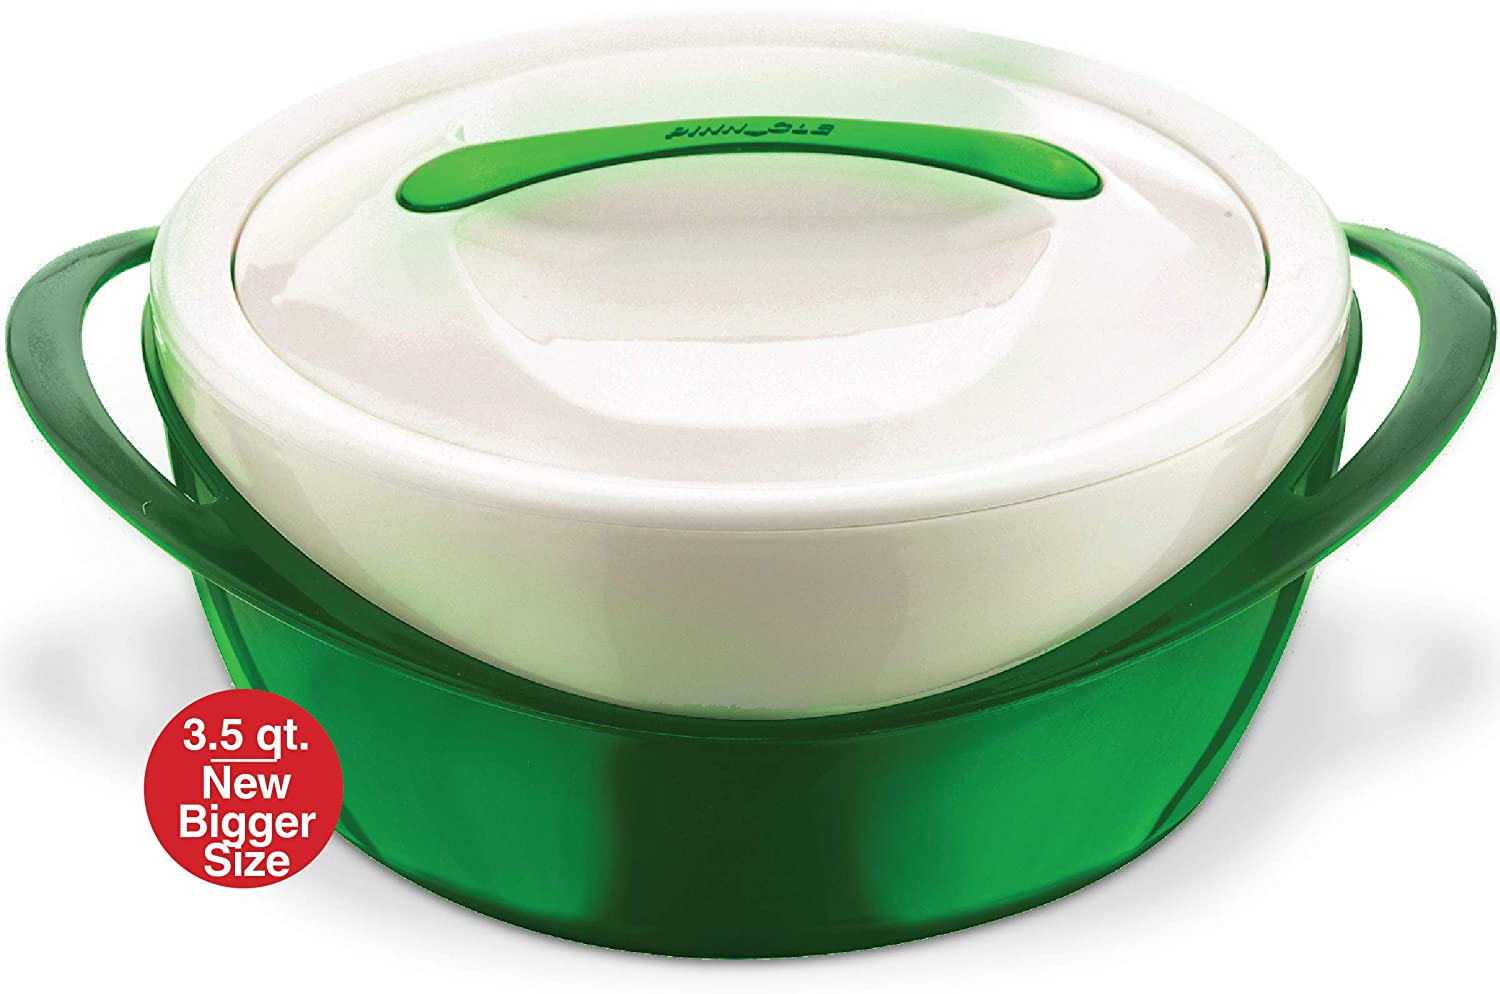 Pinnacle Casserole Dish - Large Soup and Salad Bowl - Insulated Serving Bowl With Lid (3.6 qt, Green)